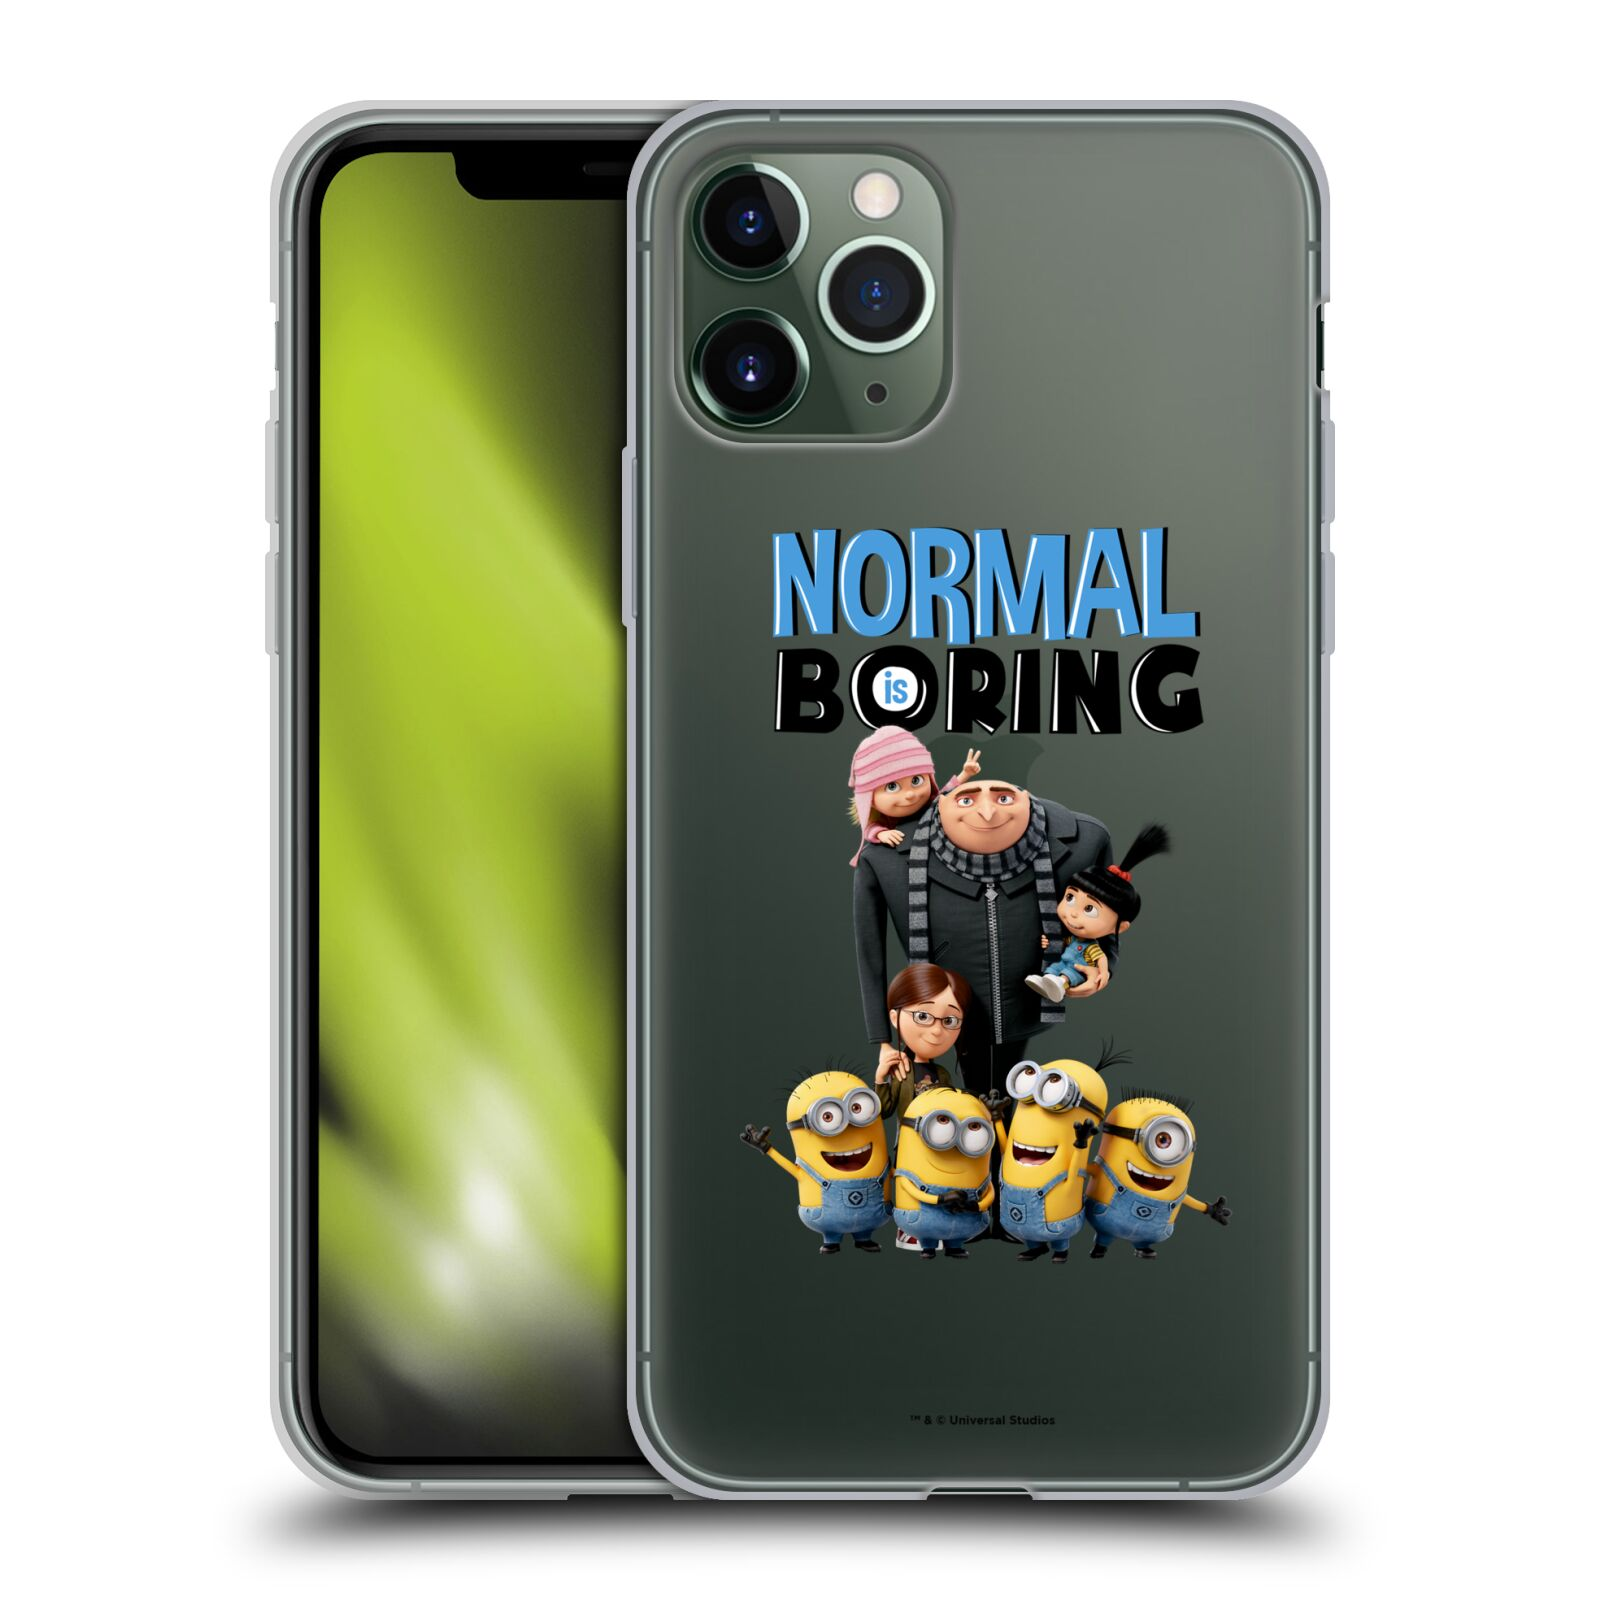 iphone 8 pouzdro guess | Silikonové pouzdro na mobil Apple iPhone 11 Pro - Head Case - Normal is boring z filmu Já, padouch - Despicable Me